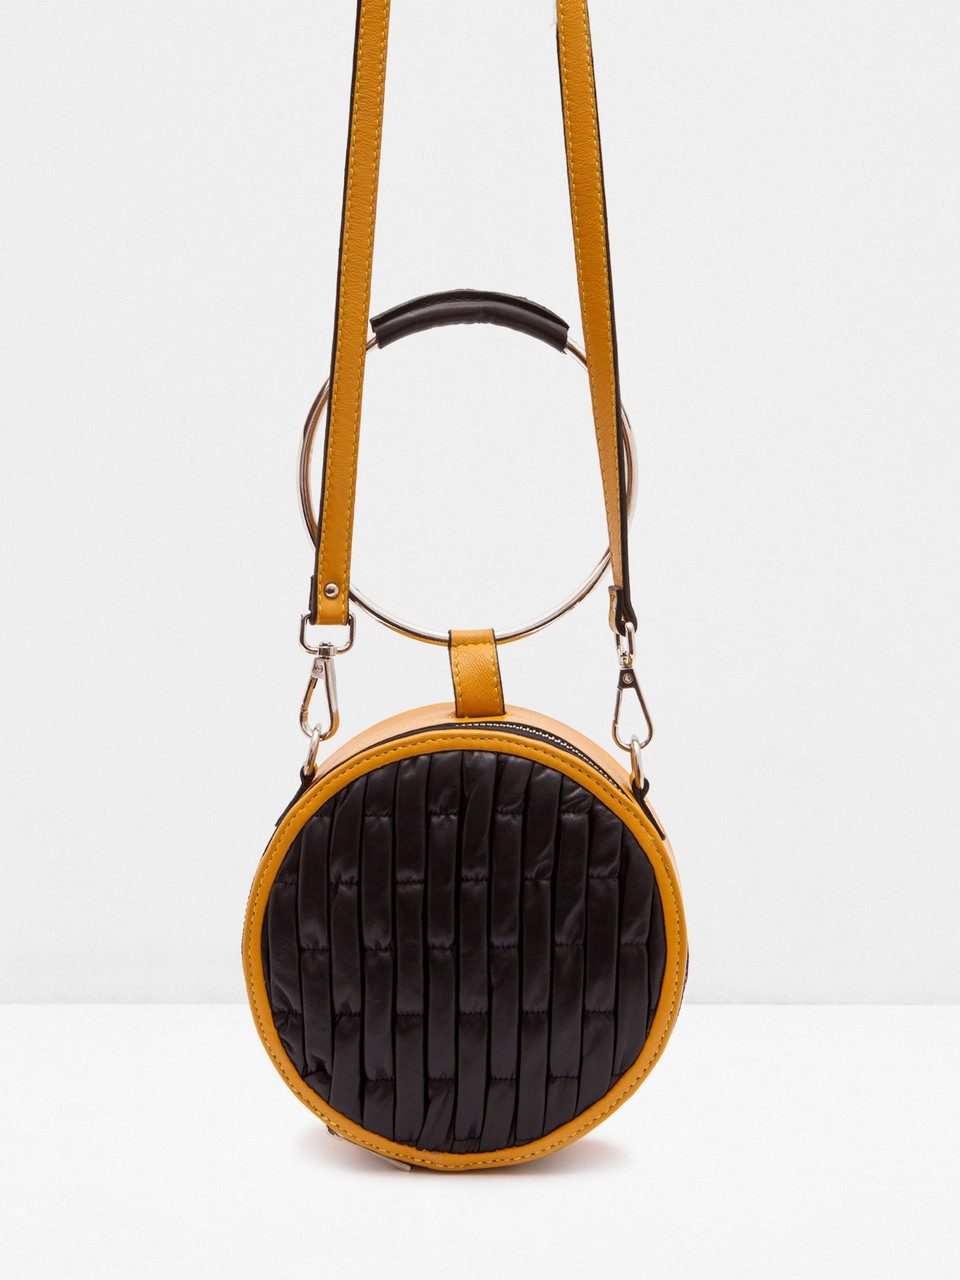 Round Form Genuine Leather Bag With Round Handle